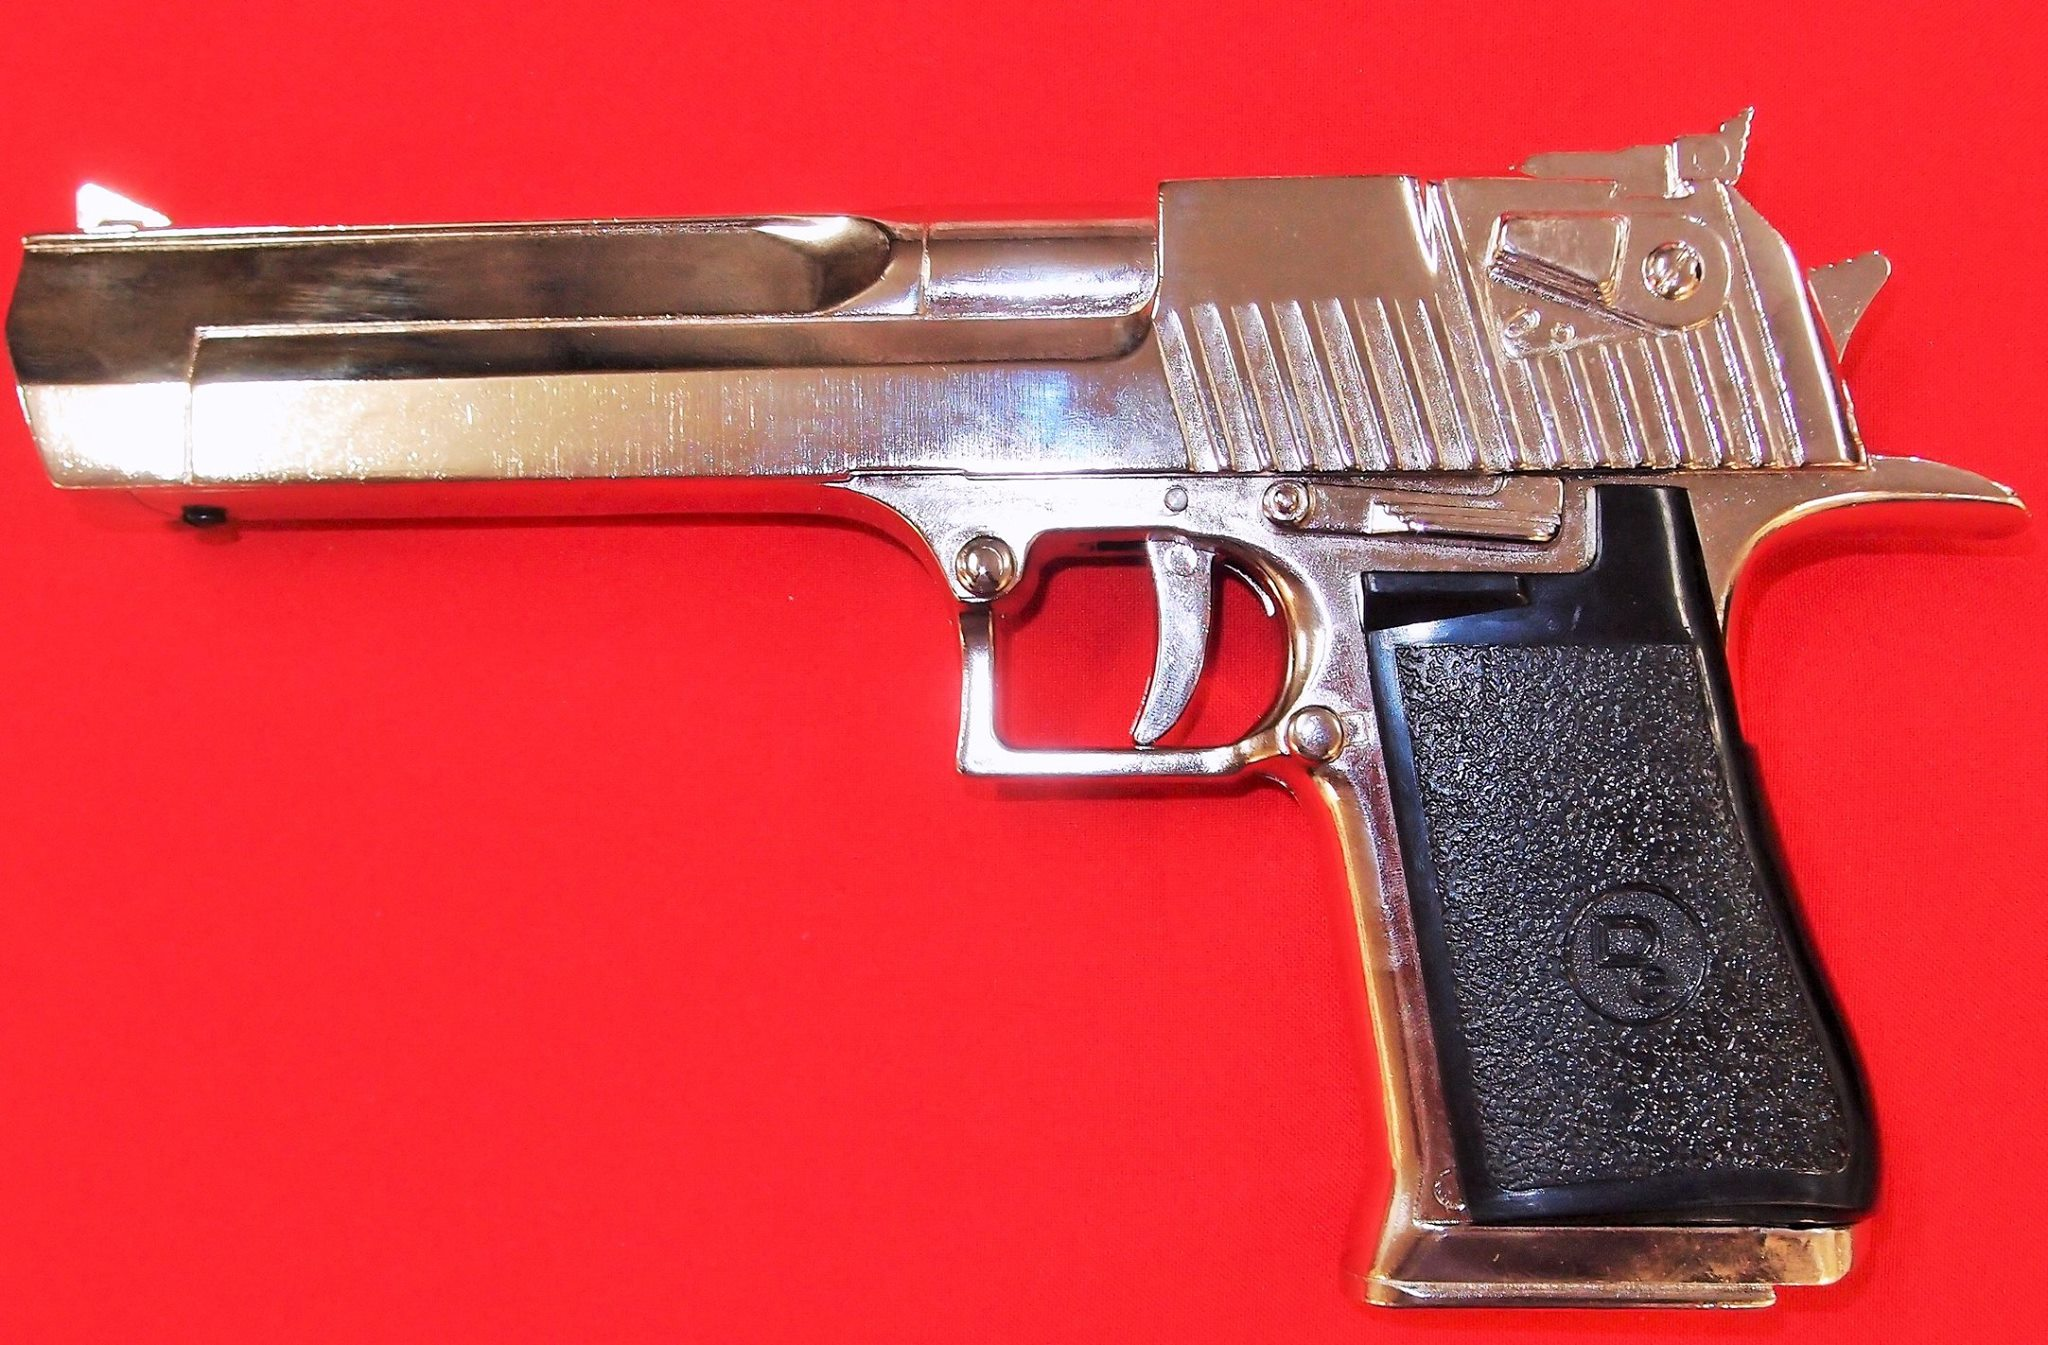 Denix Replica Desert Eagle Semiautomatic Pistol